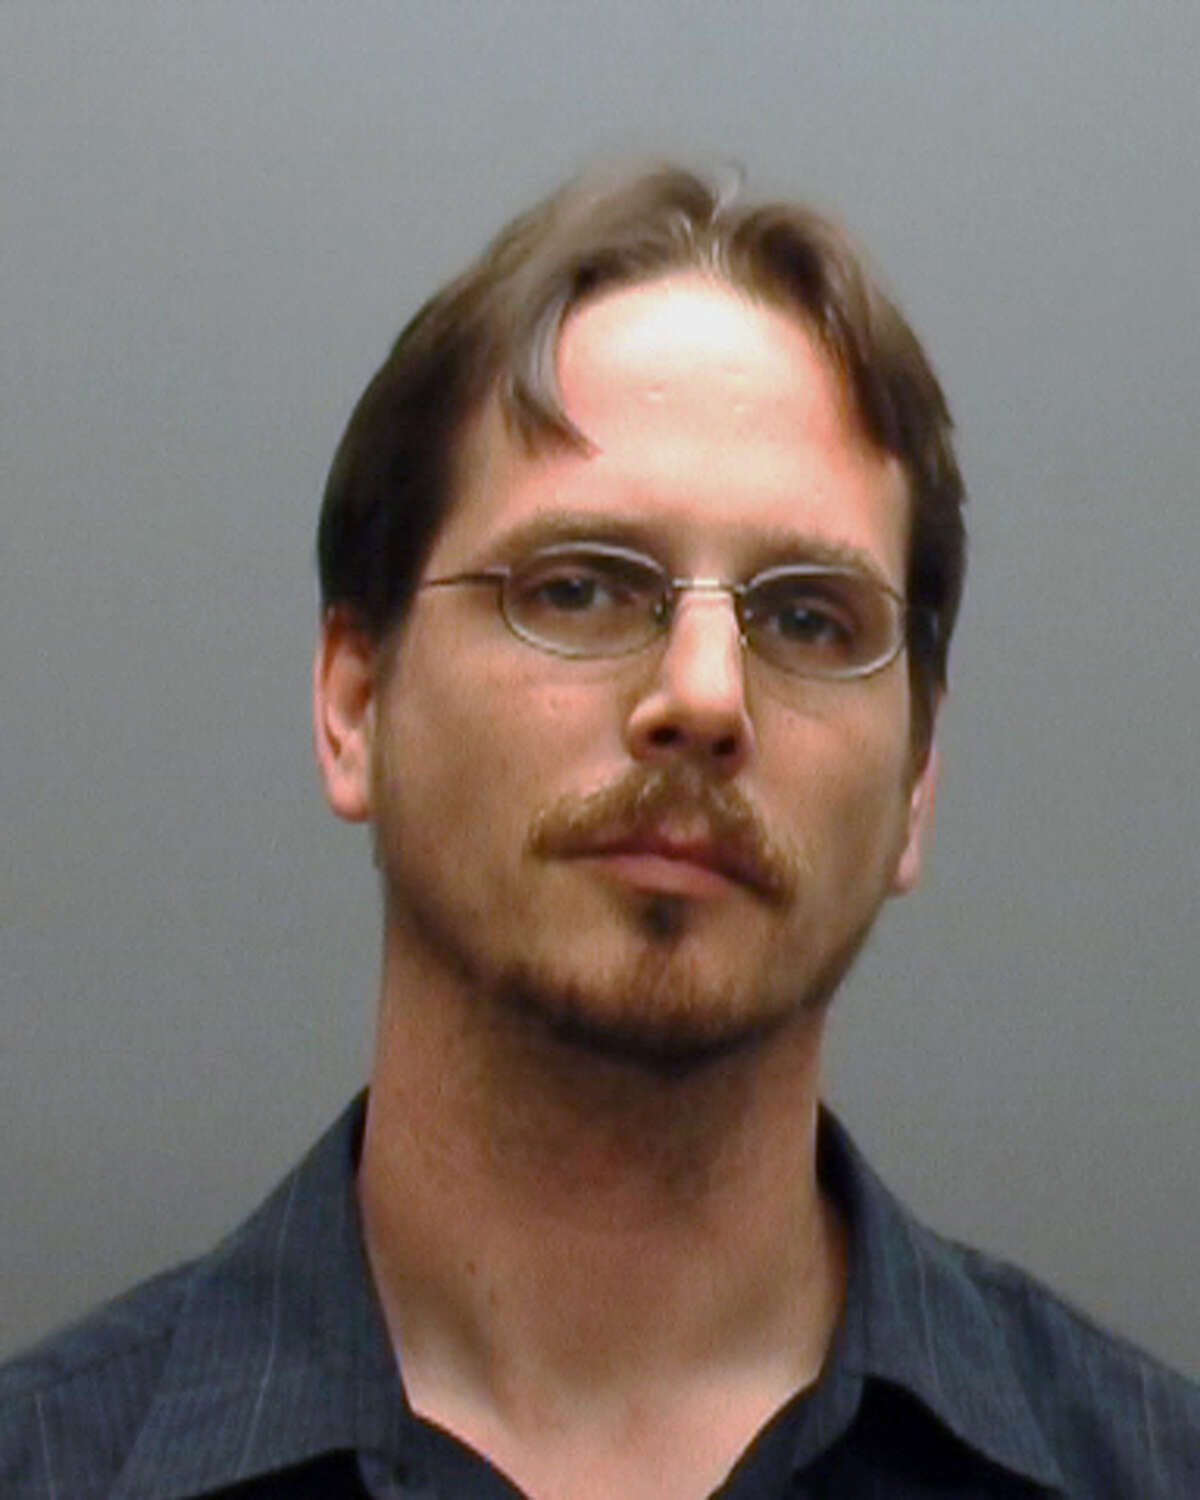 This booking photo provided by the Hays (Texas) County Sheriff shows Dane Thyssen. The Dripping Springs Police say Thyssen and his wife, Jenifer Thyssen kept their adopted son, 22-year-old Koystya Thyssen locked in a garage apartment for at least four years, periodically giving him a box of food and allowing him to leave once a week. Police began investigating when Koystya Thyssen was arrested for allegedly burglarizing a neighbor's home. (AP Photos/Hays County Sheriff)